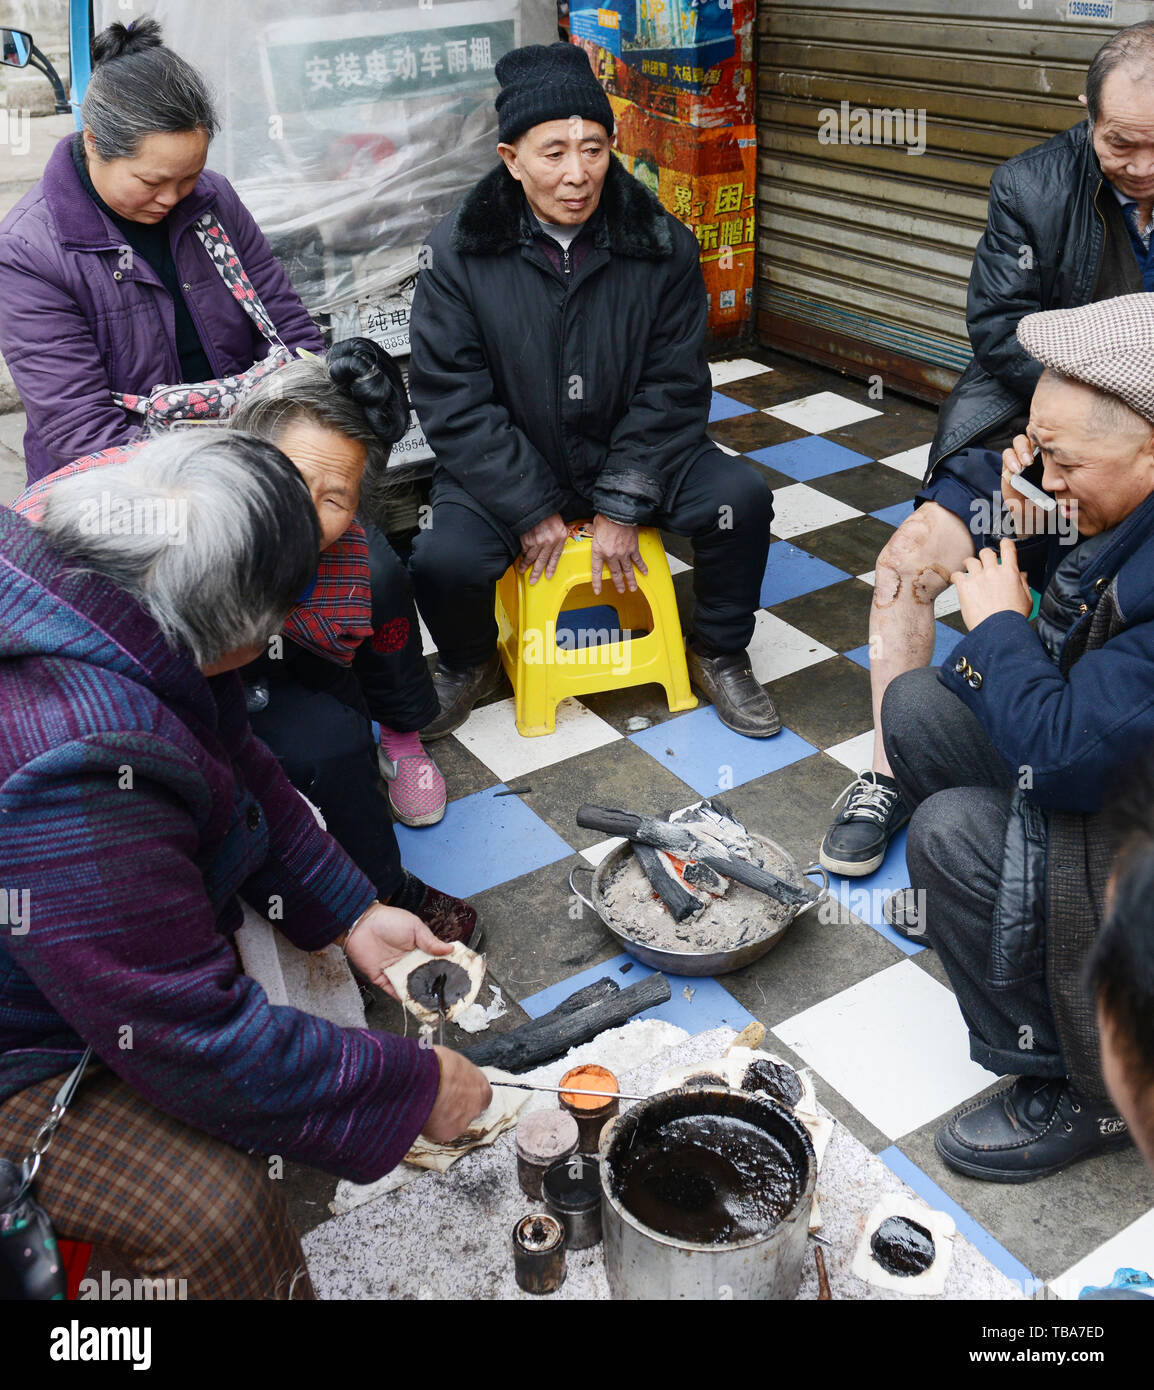 Elderly Chinese sitting together in the streets of Kaili, Guizhou, China. - Stock Image